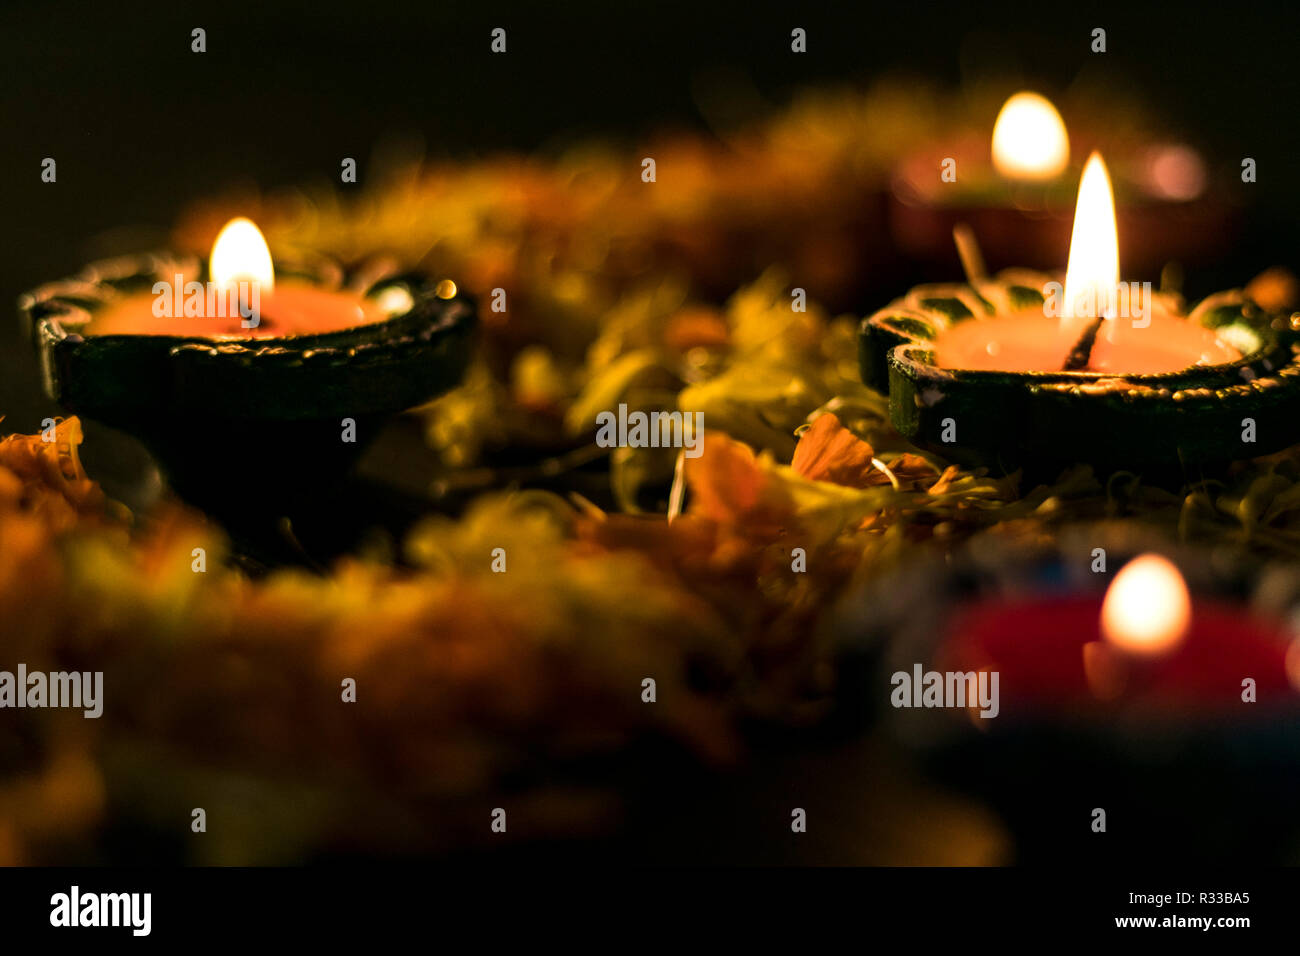 Lit diyas placed on flowers for celebrating diwali and dhanteras in Asia Stock Photo